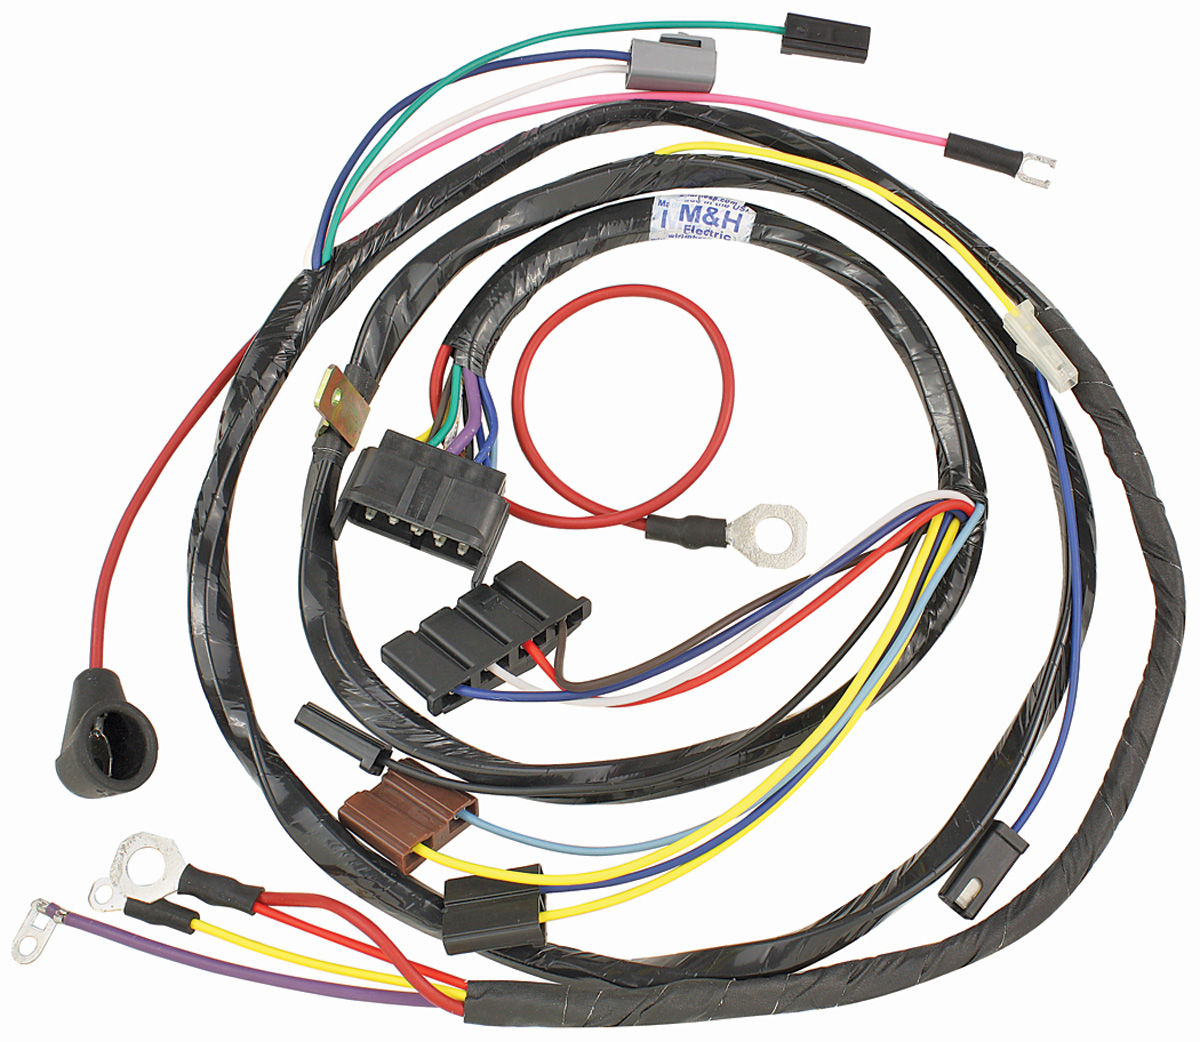 hight resolution of 1968 buick skylark underhood wiring harness 43 wiring 1966 gto wiring diagram 1966 gto ignition wiring diagram